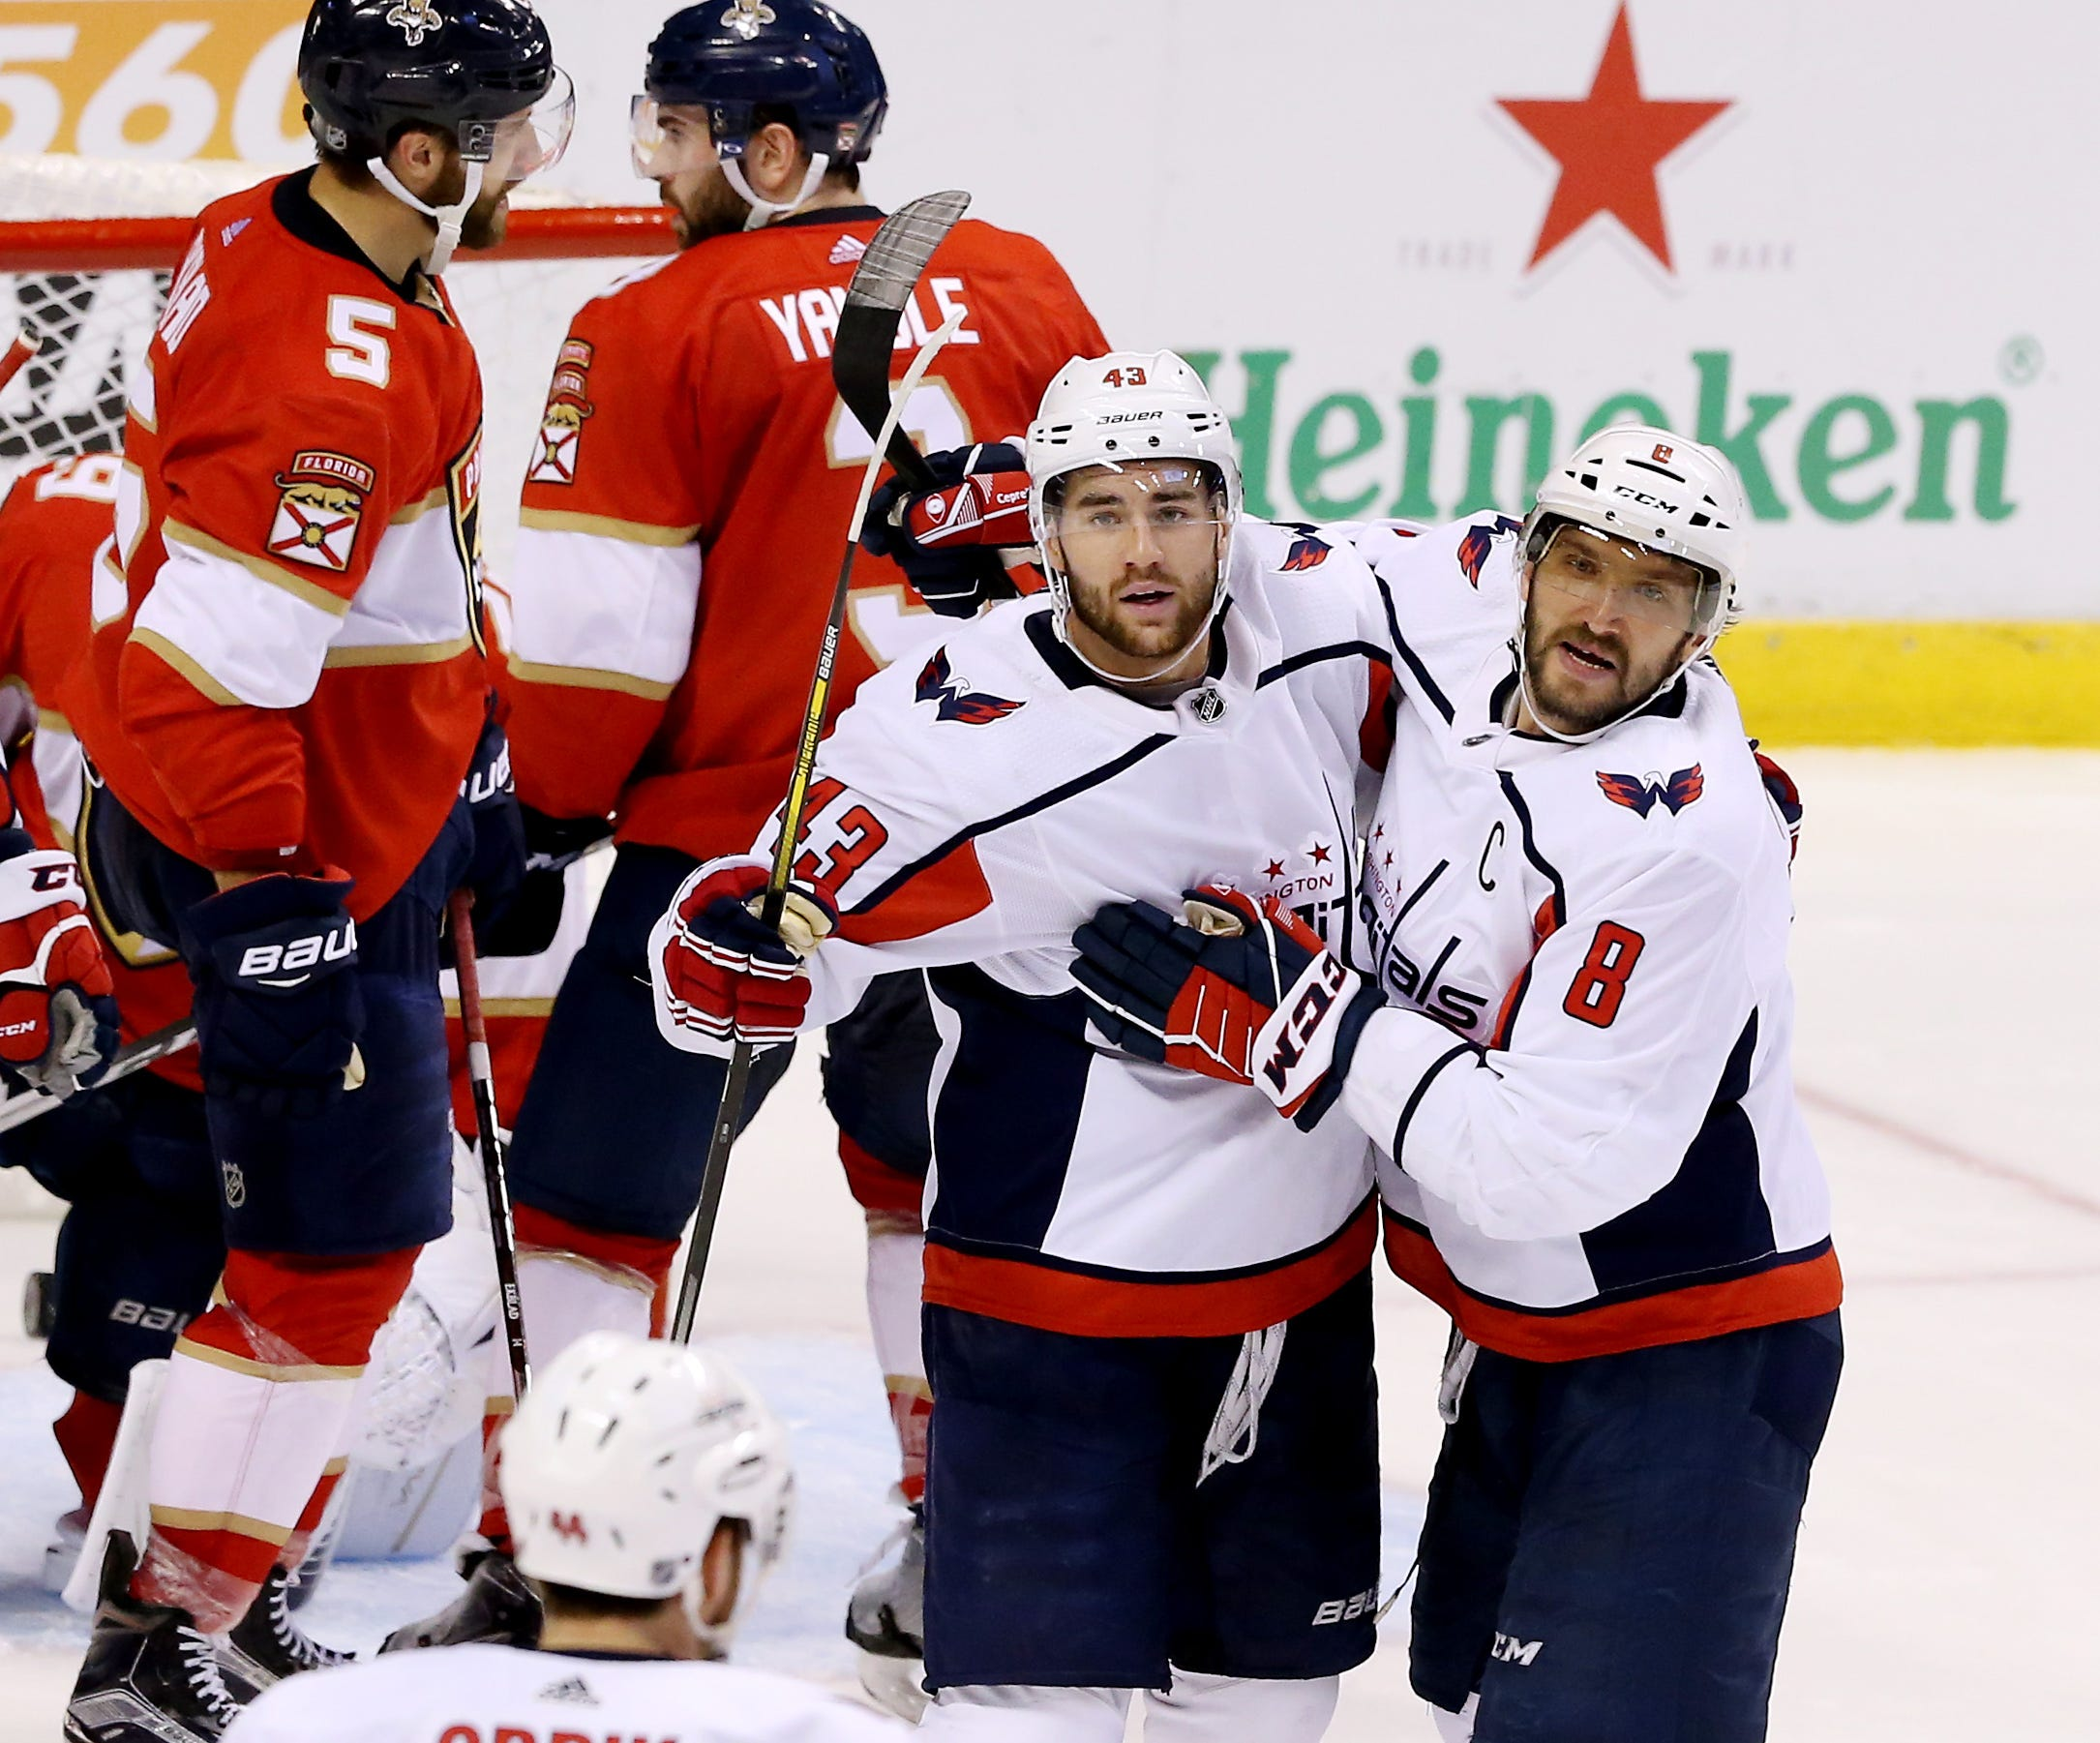 Alex Ovechkin hits milestones as Capitals end skid